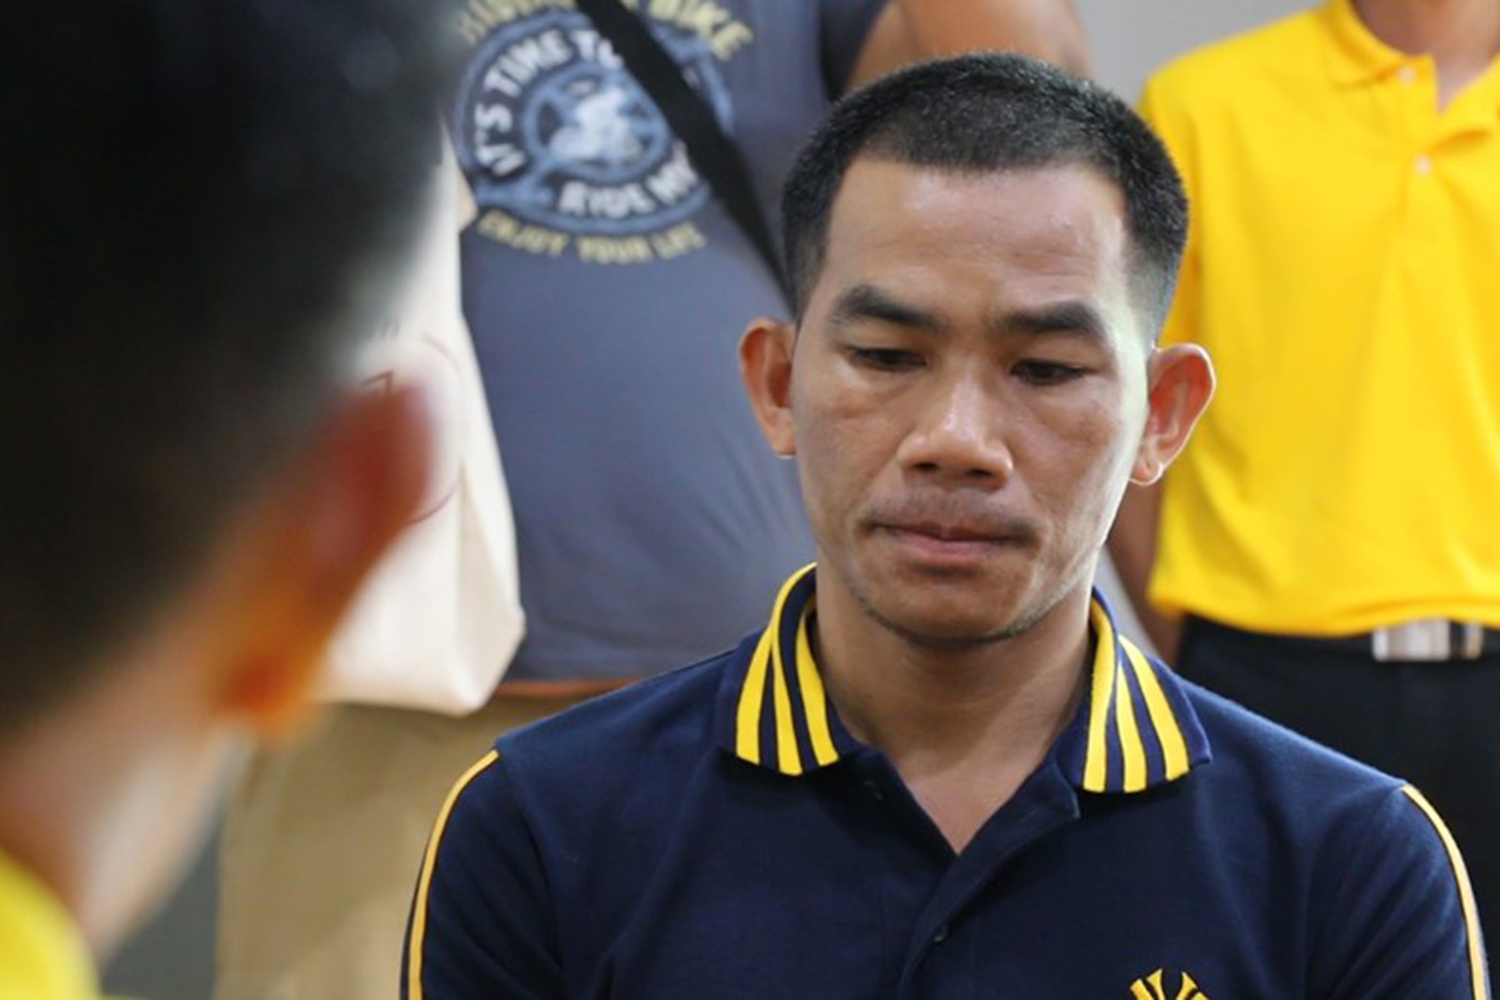 Anuchit Namsri is fined 10,000 baht by the Land Transport Office in Khon Kaen on Thursday for a quarrel with his girlfriend while he was supposed to be behind the wheel. (Photo by Chakrapan Nathanri)